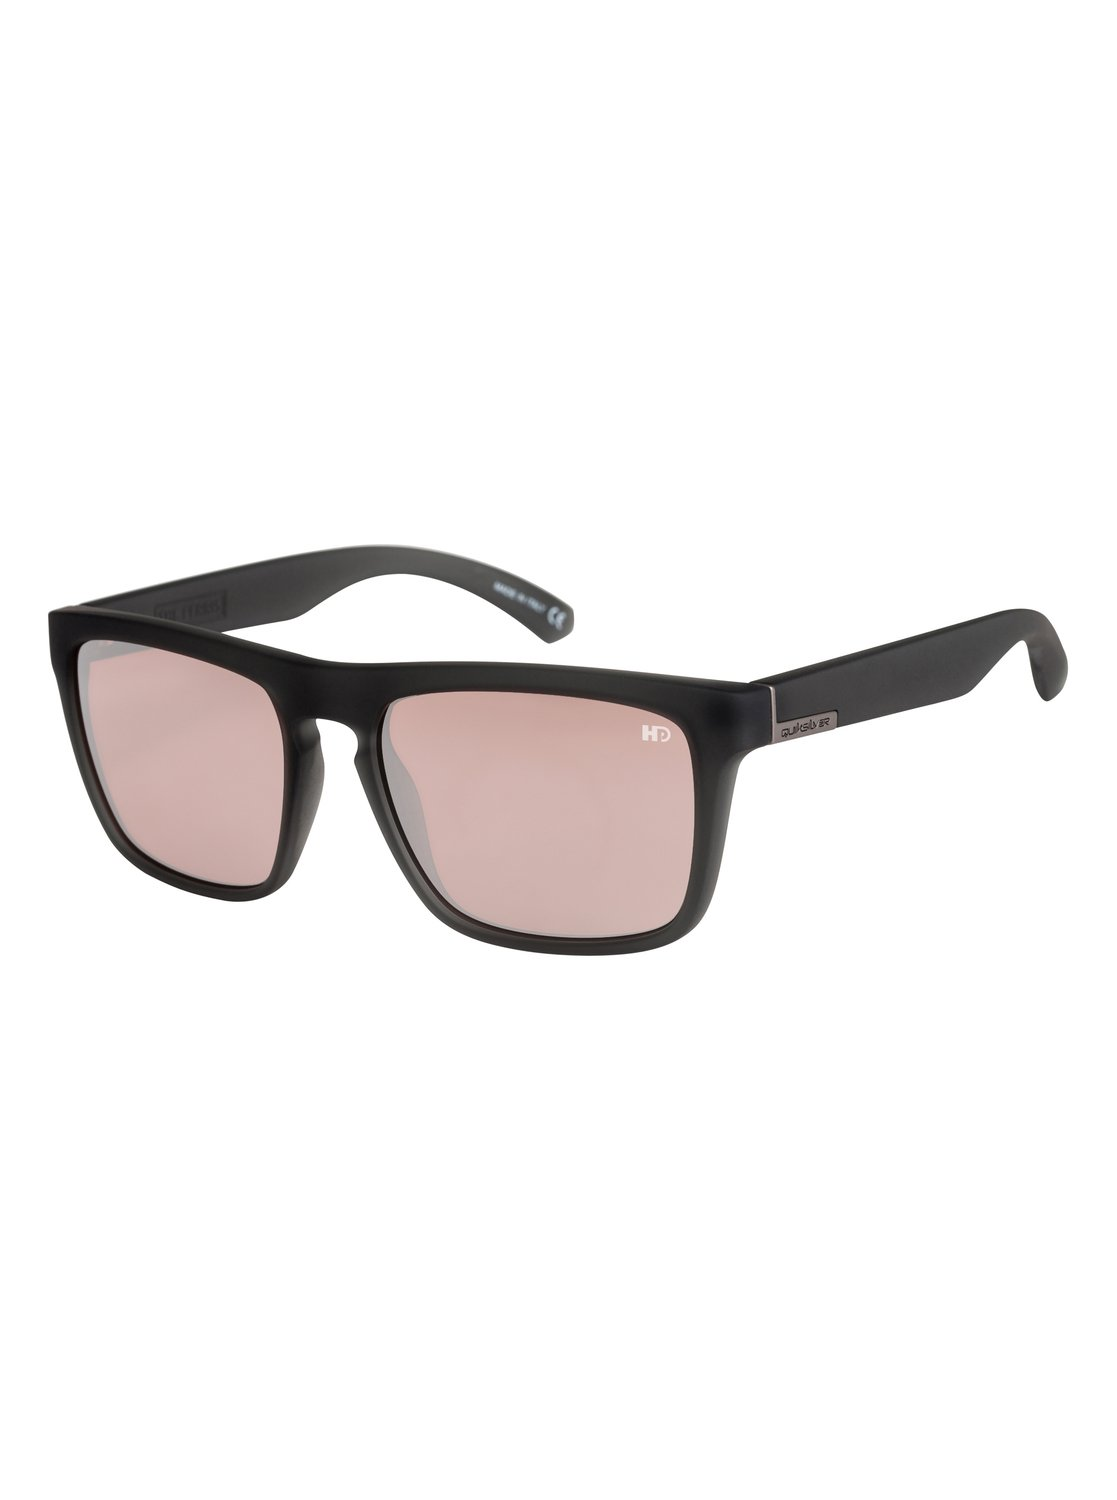 The Ferris Hd Polarized - Sunglasses